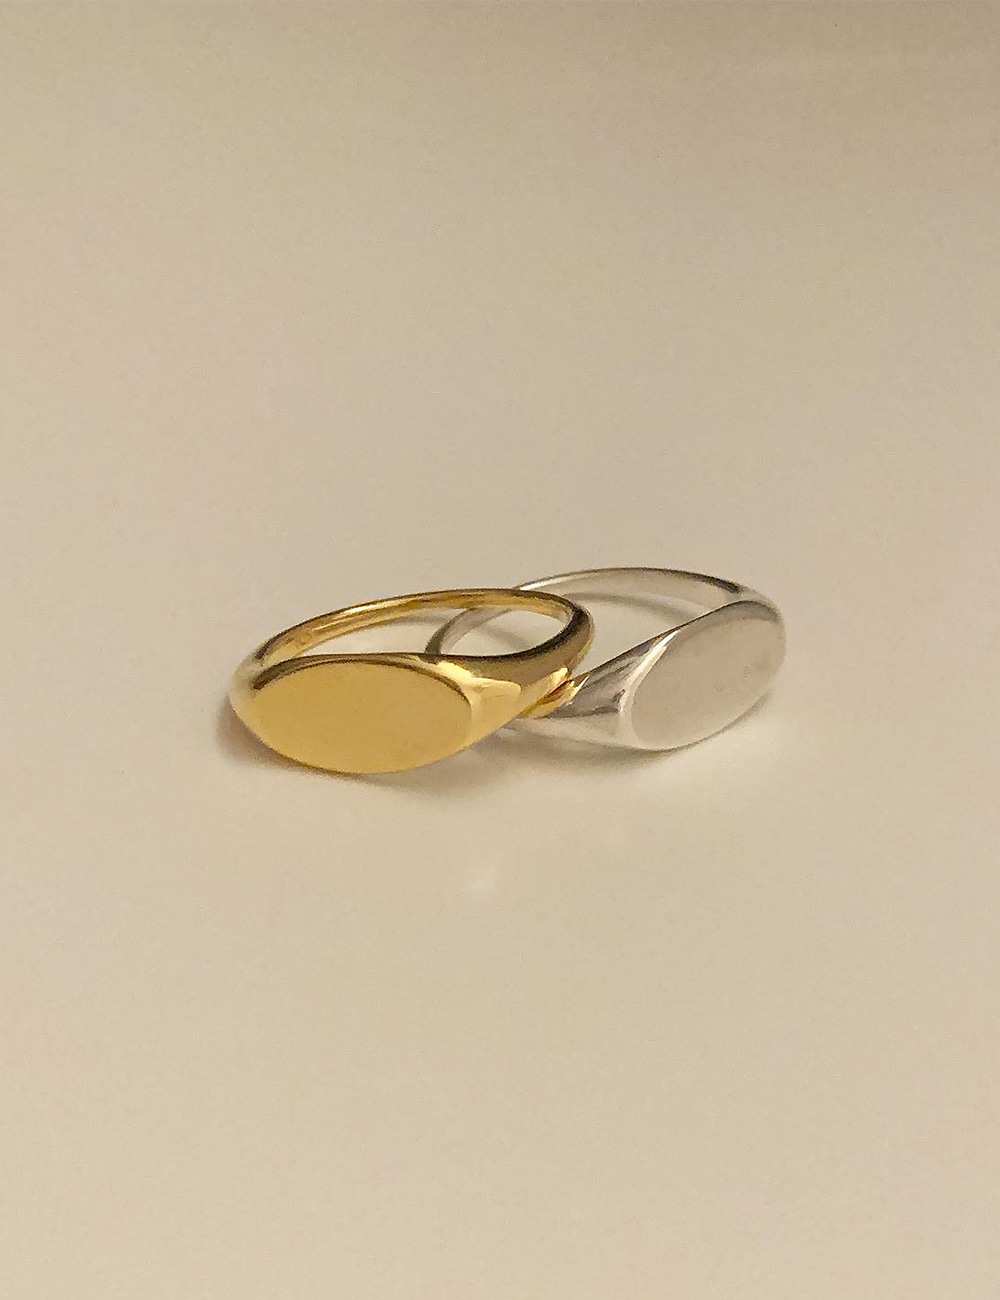 (silver 92.5) Oval flat ring